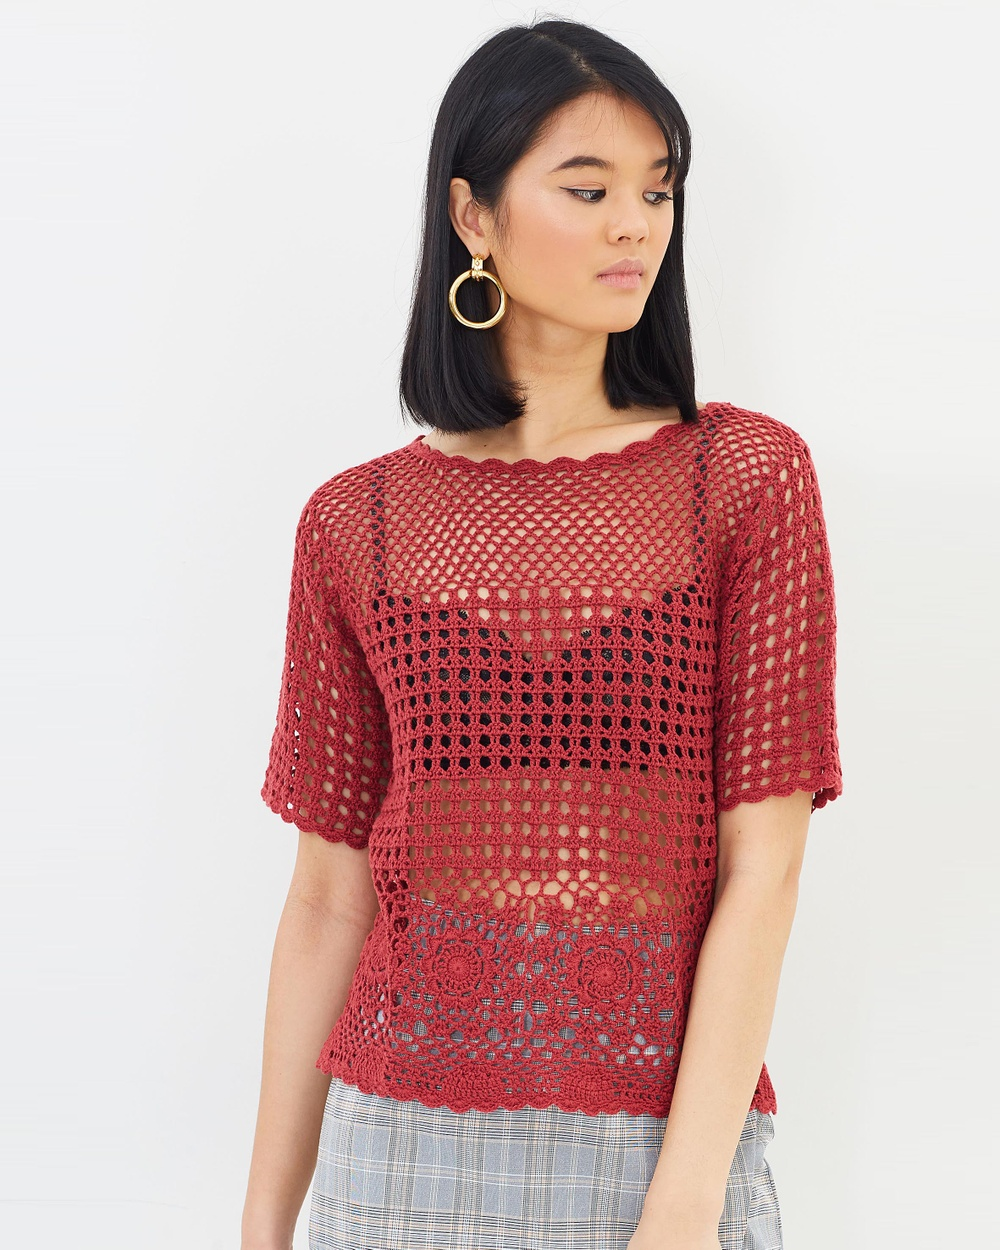 Oasis Crochet Knitted Top Tops Mid Orange Crochet Knitted Top